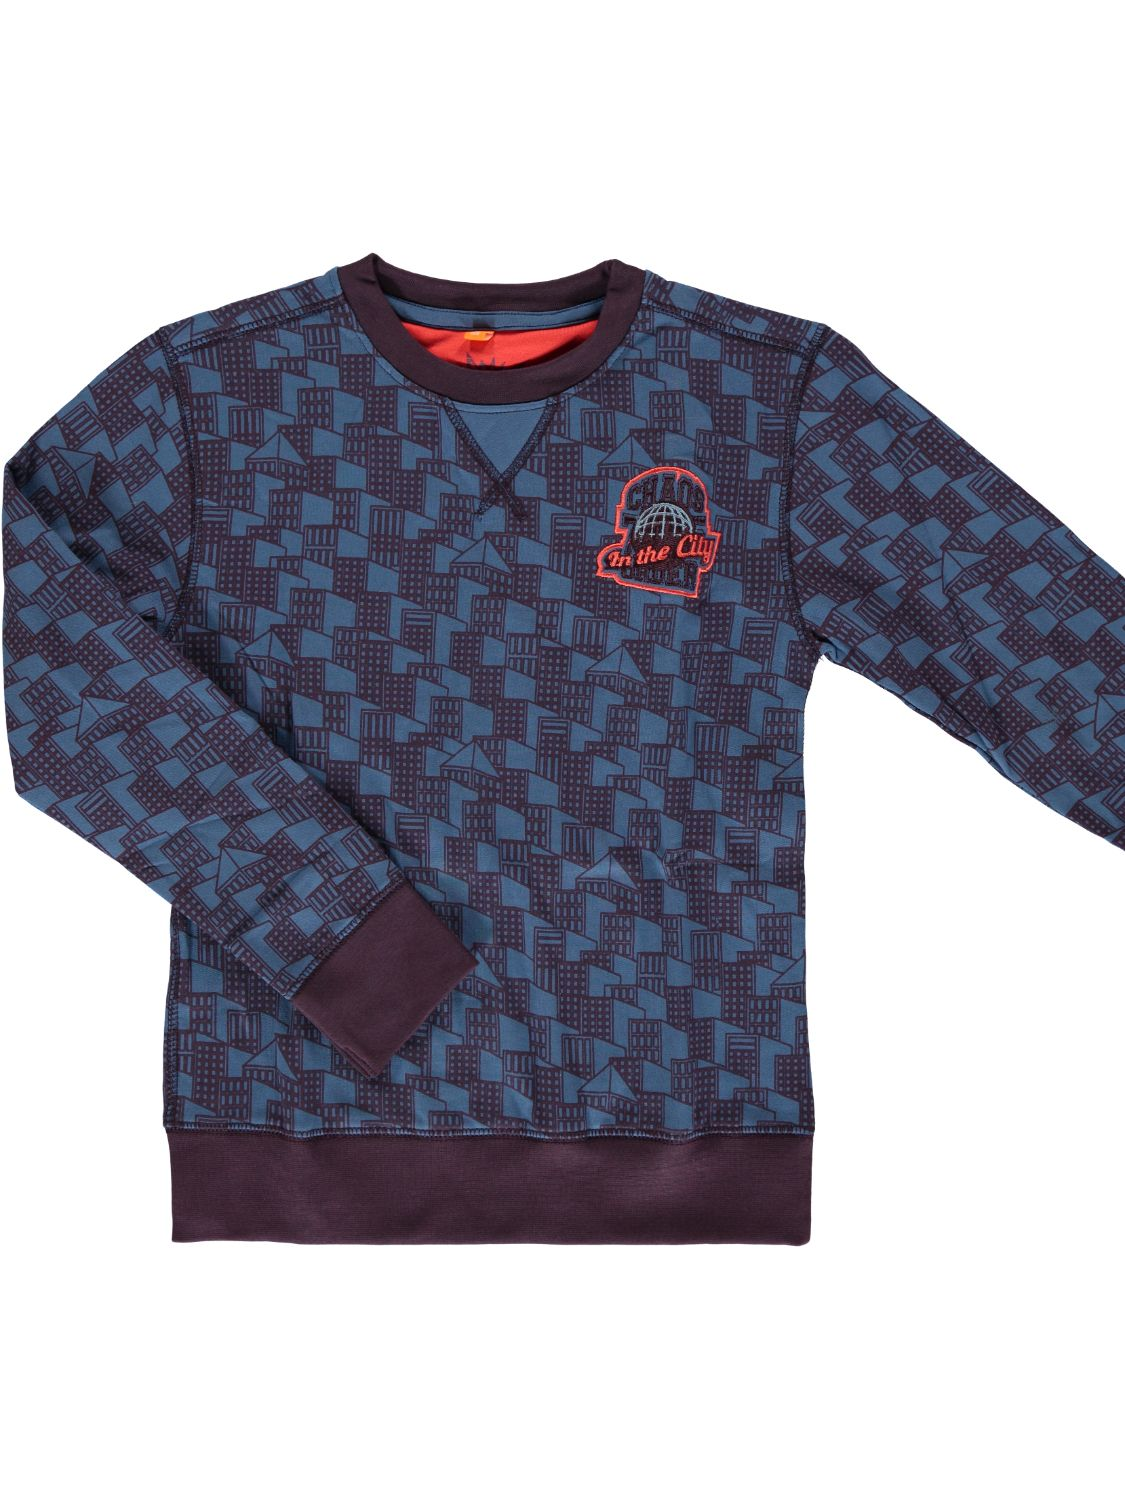 Chaos and Order Sweater